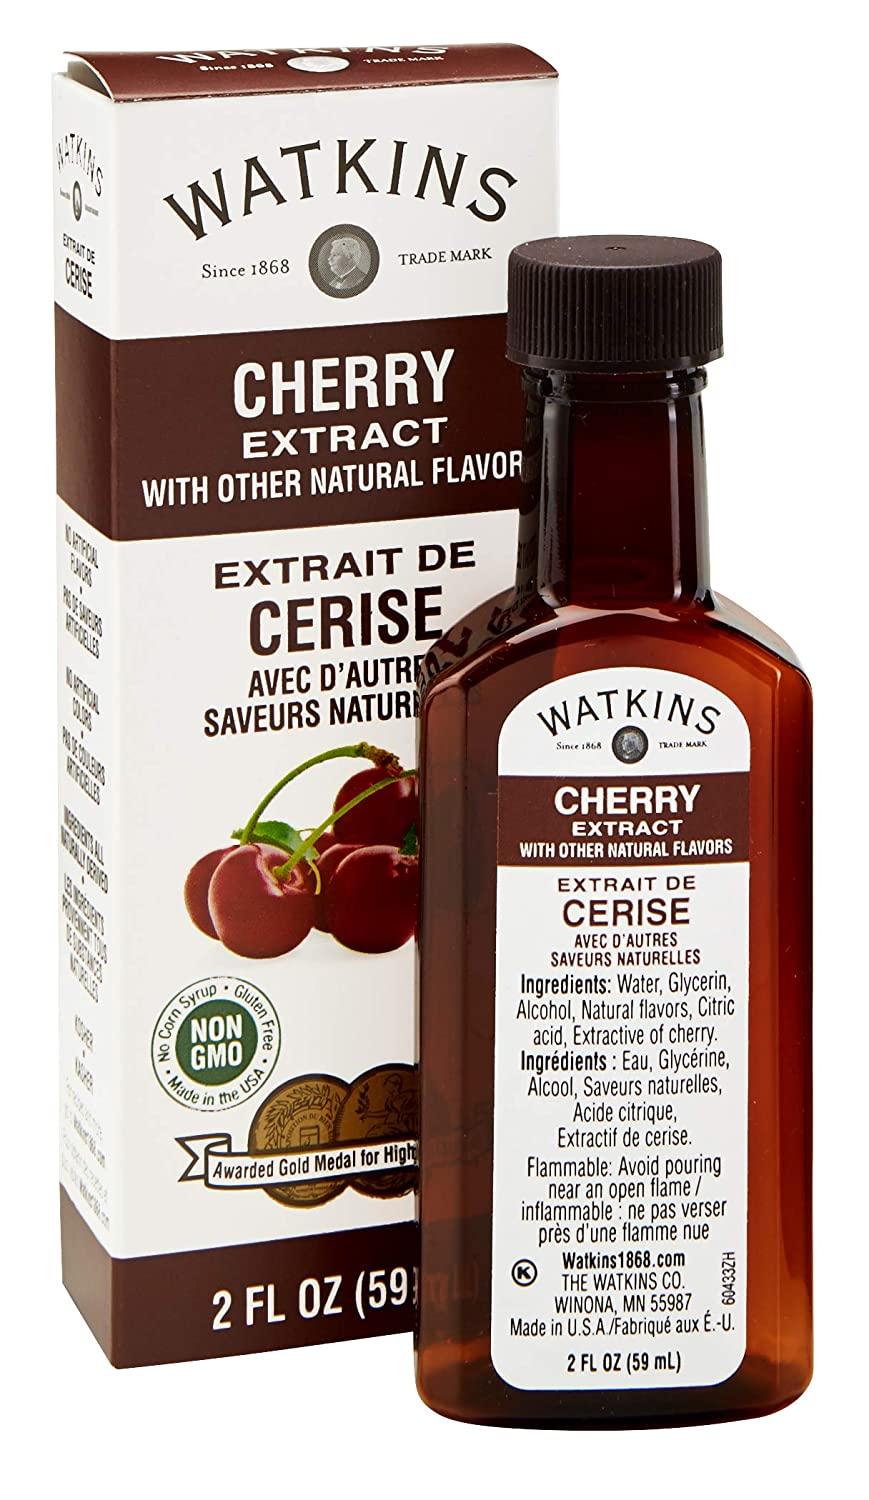 Watkins Cherry Extract with other Natural Flavors, 2 oz. Bottles, Pack of 6 (Packaging May Vary)